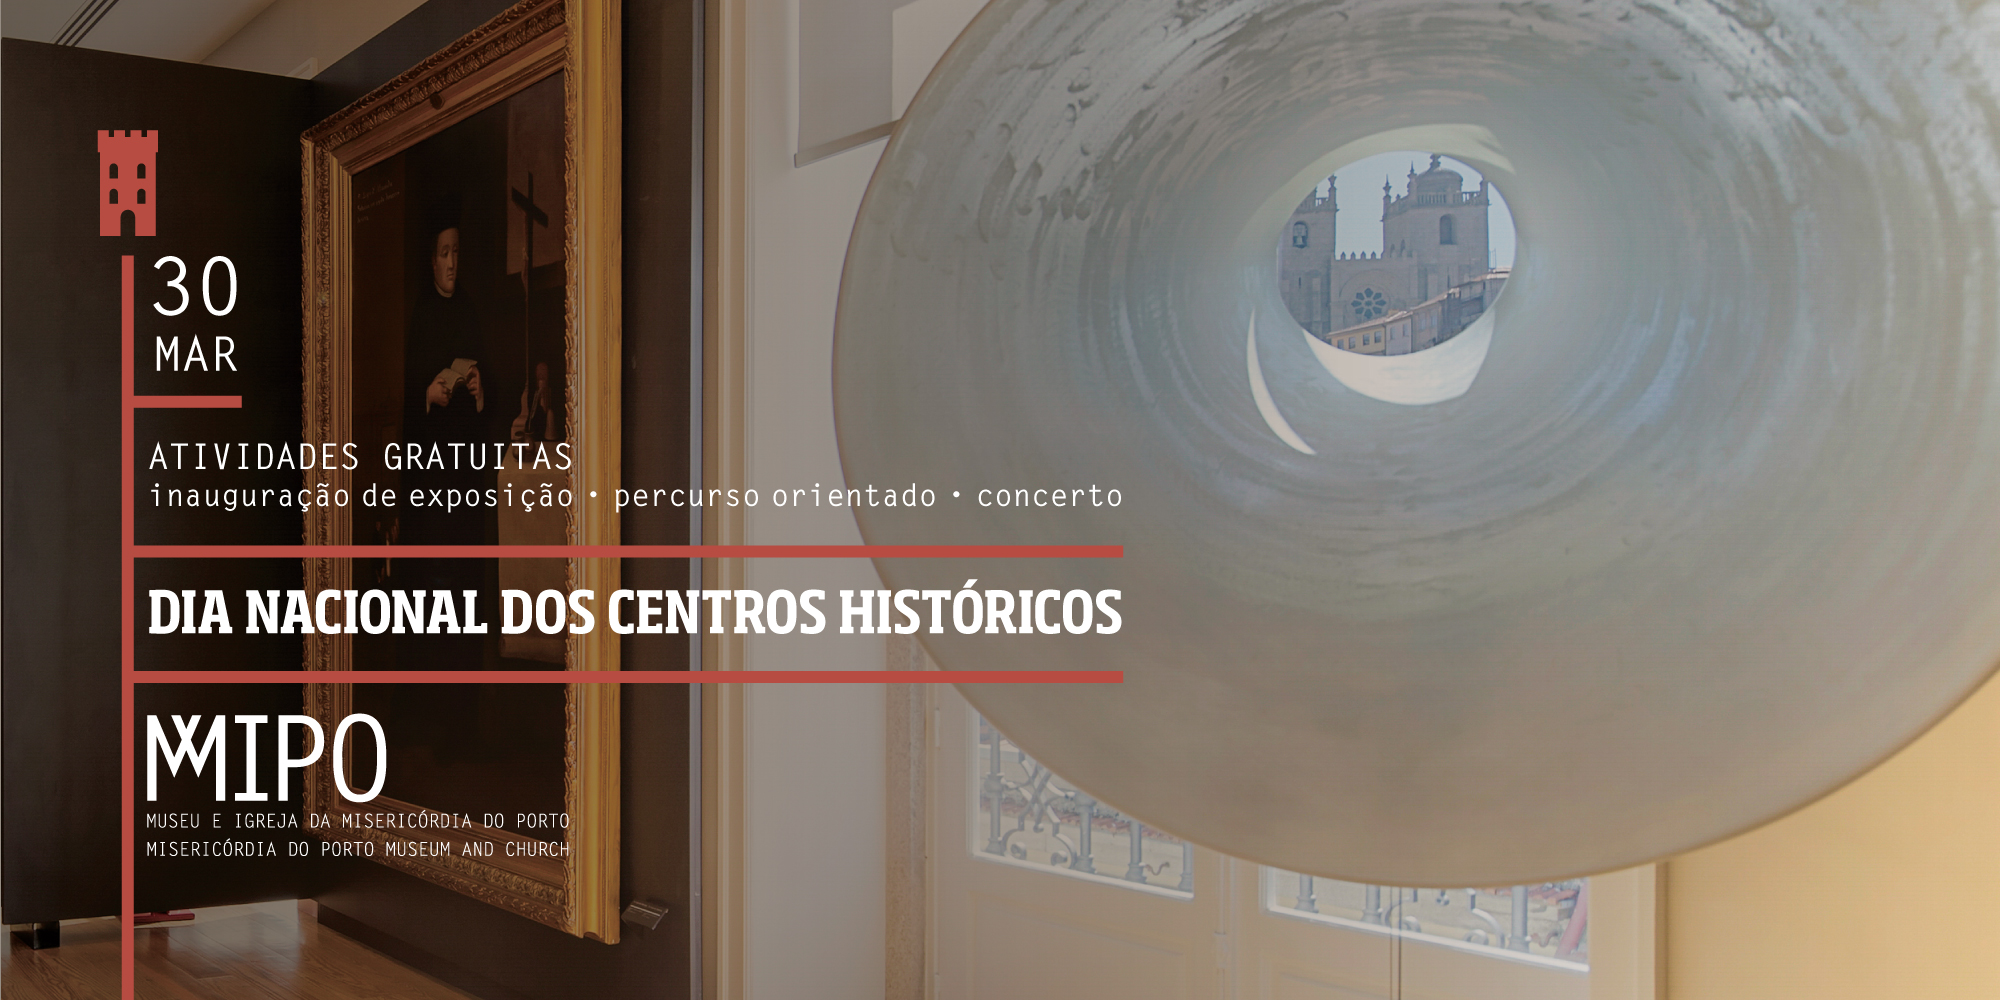 http://www.mmipo.pt/assets/misc/slideshow/2019/2019-03-30%20DNCH/MMIPO-dia-nacional-centros-historicos-banner-site.jpg